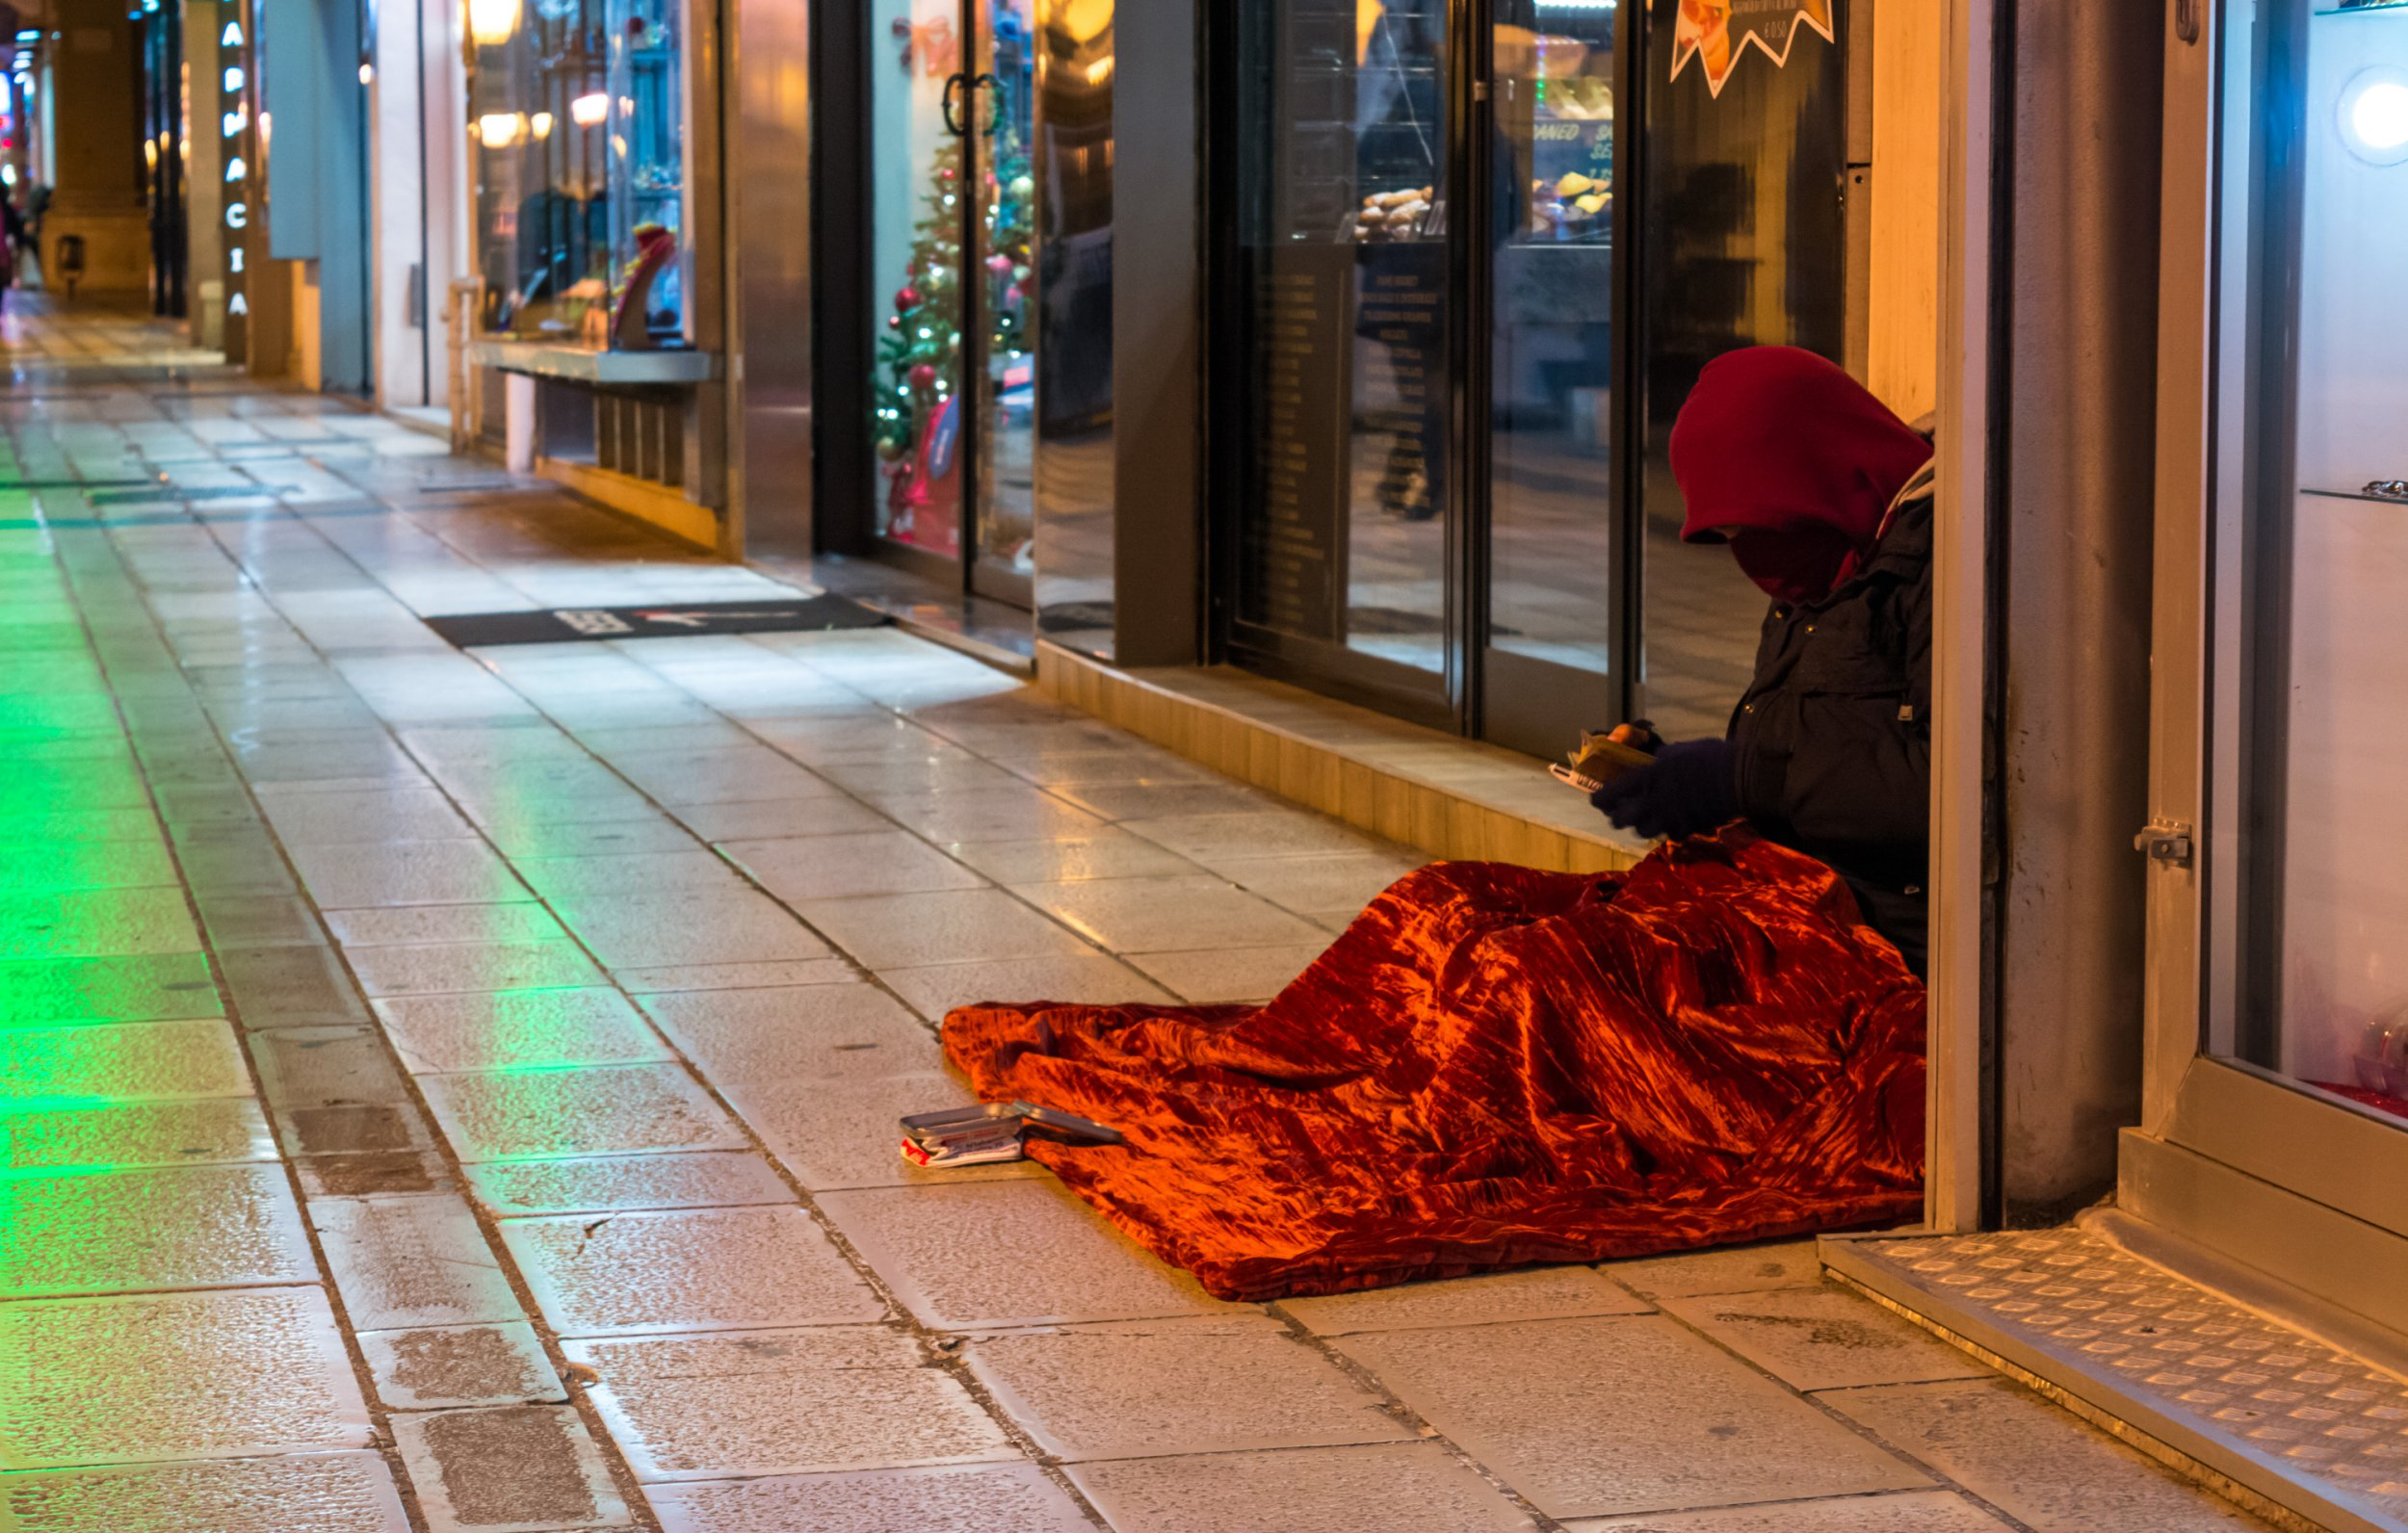 Hooded Clochard In A Street Near A Window Of A Shop During A Cold Day In The Christmas Period In Italy; Shutterstock ID 778924792; Purchase Order: -